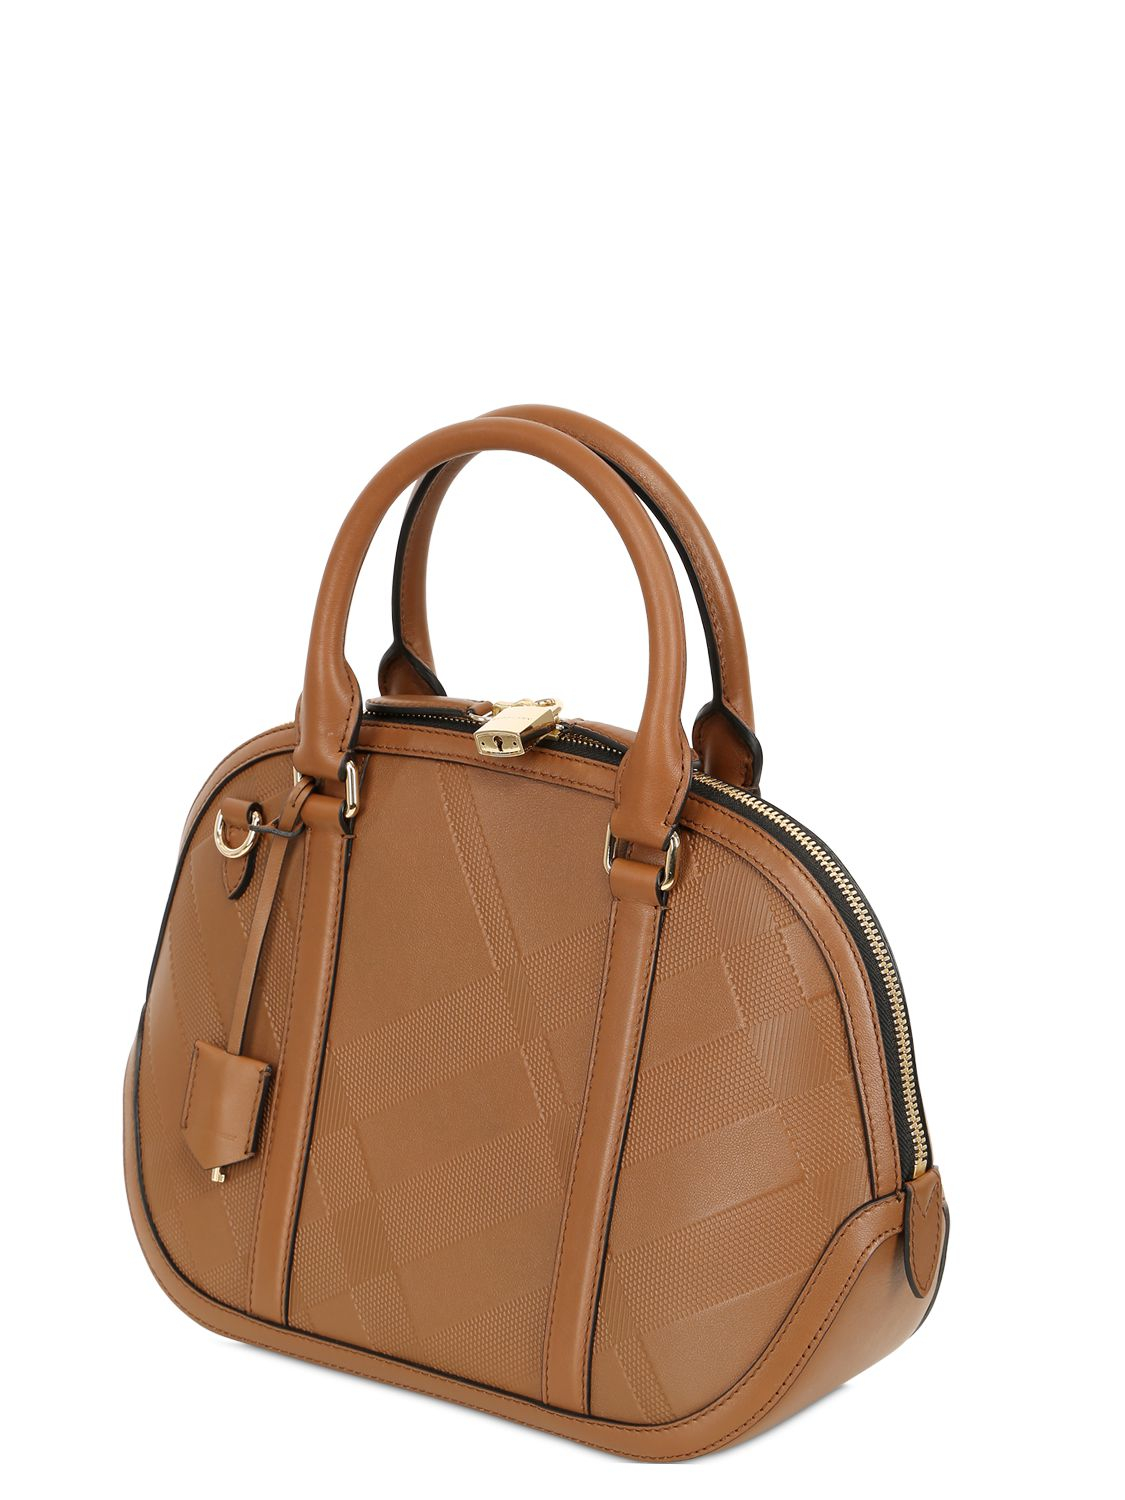 Lyst - Burberry Small Orchard Embossed Leather Bag in Brown 5b1fca8deb4c3